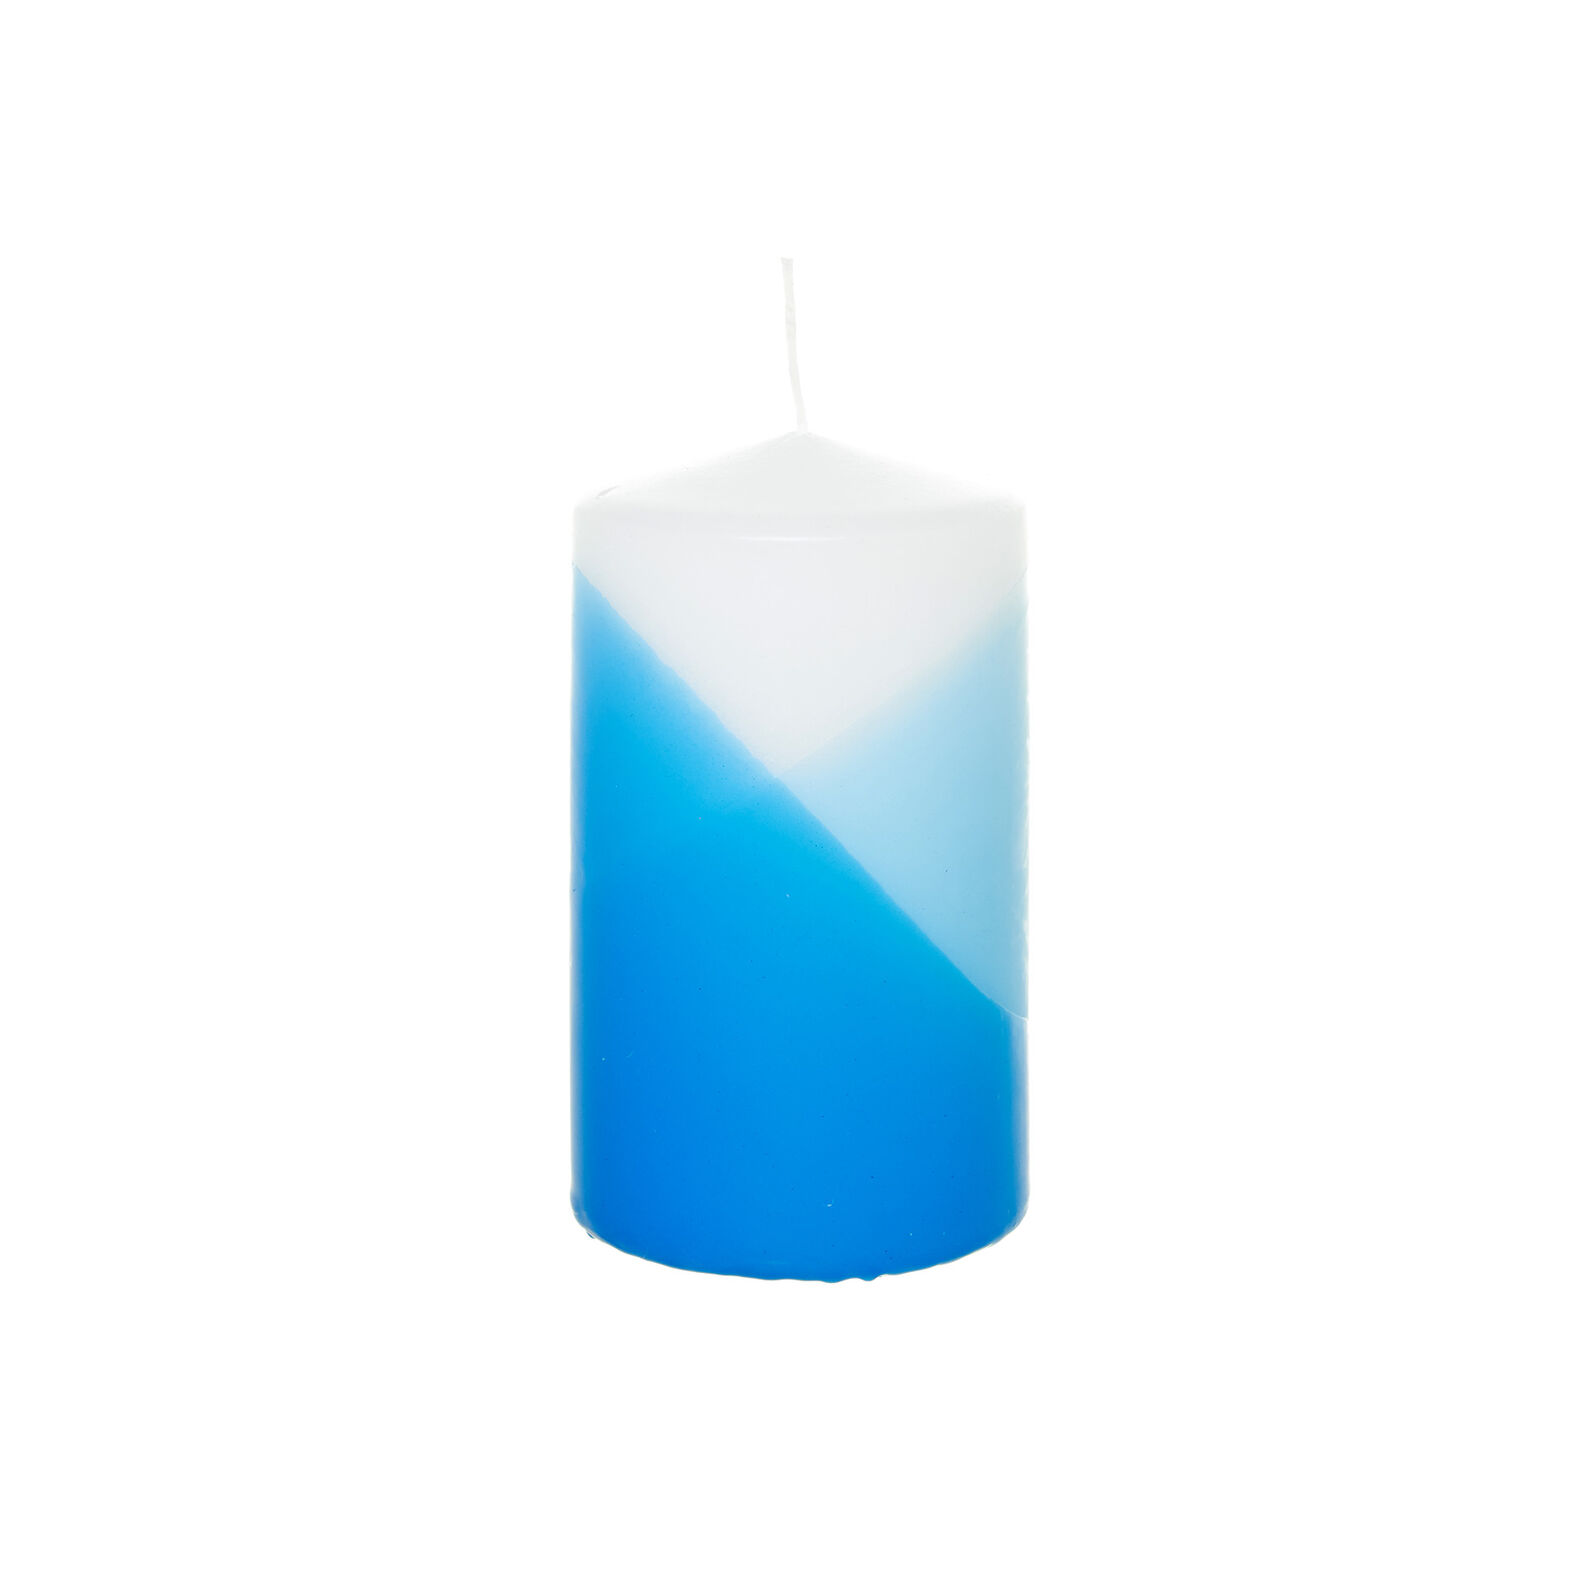 Blue-toned candle